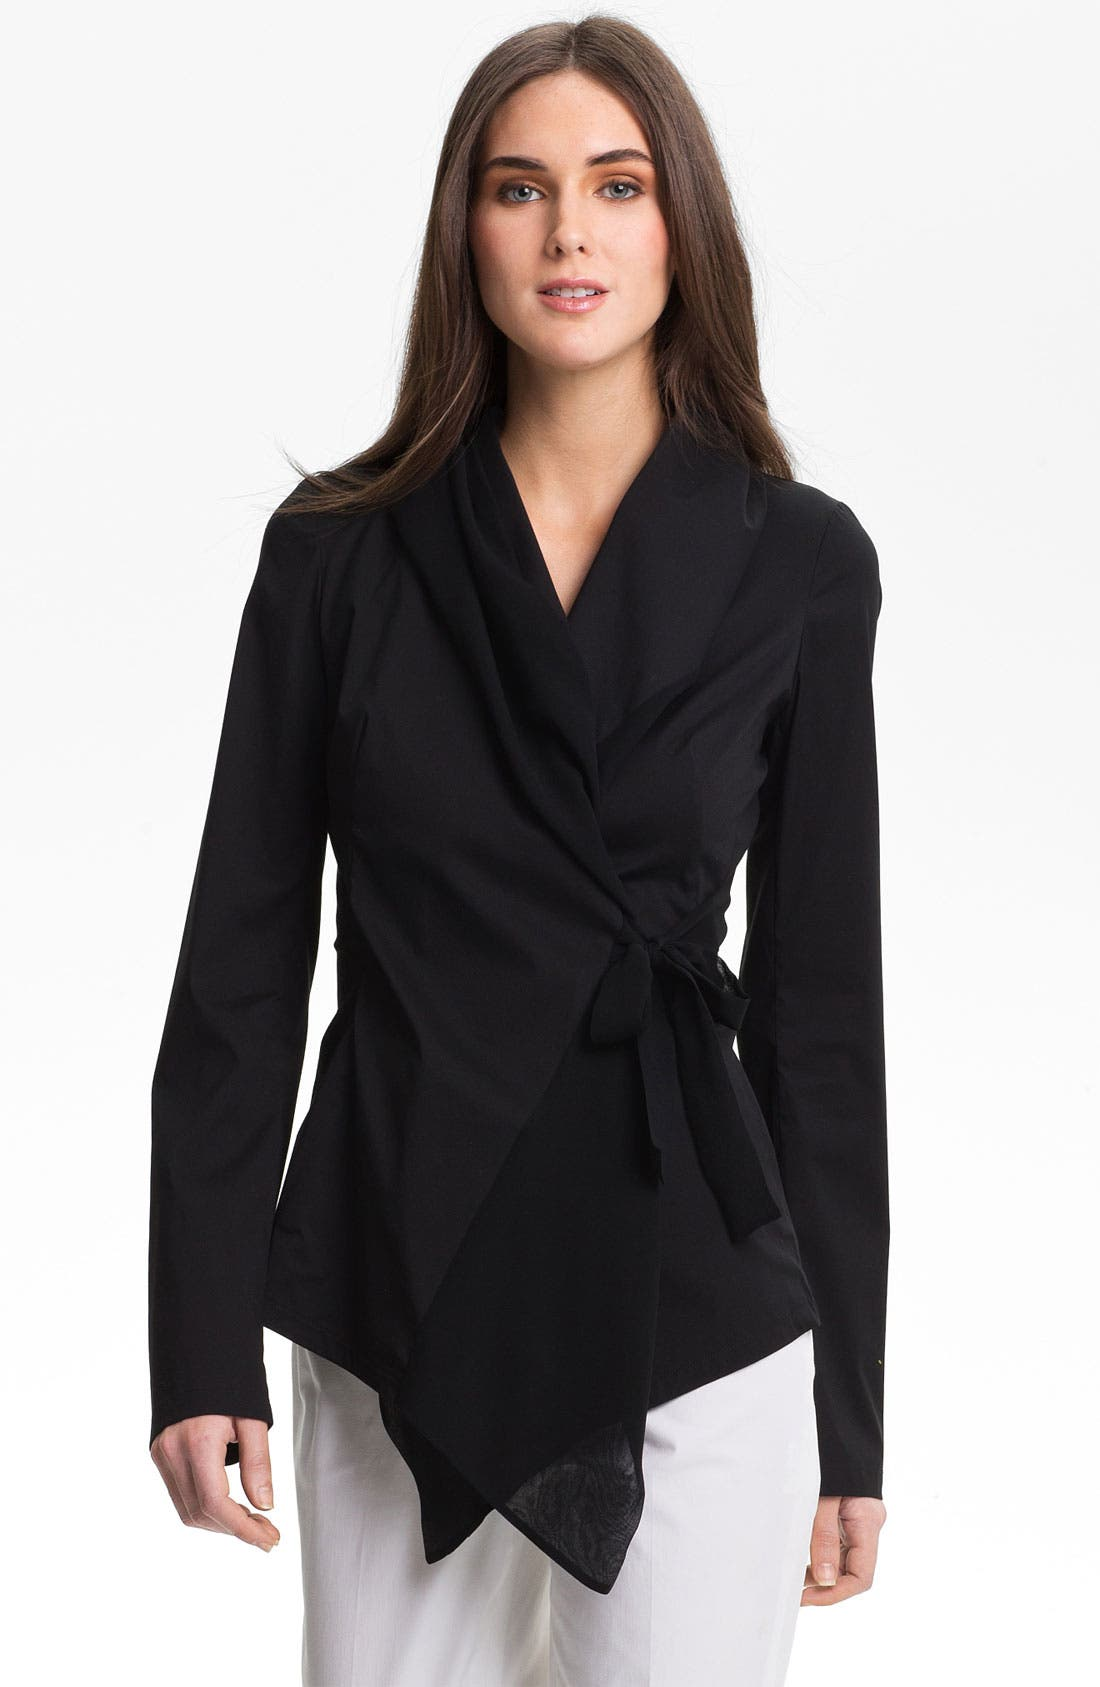 Alternate Image 1 Selected - Lafayette 148 New York 'Bethany' Italian Stretch Cotton Blend Jacket